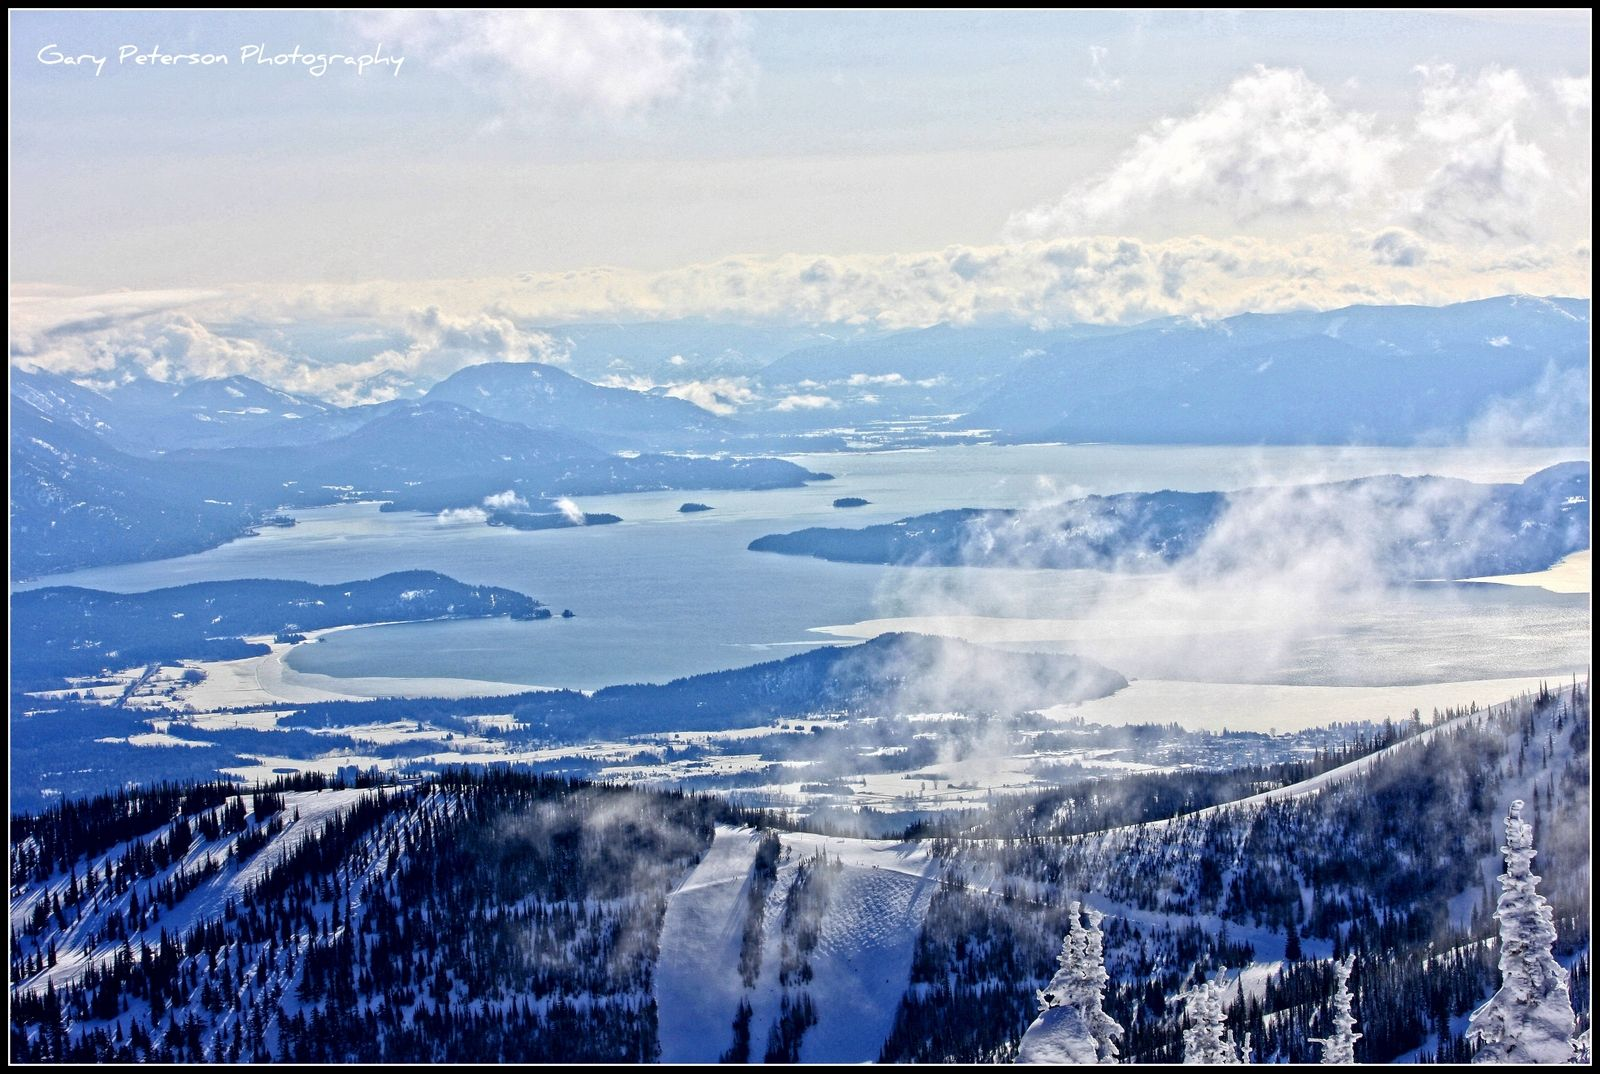 Schweitzer Mountain Resort and Lake Pend Oreille from the backside...